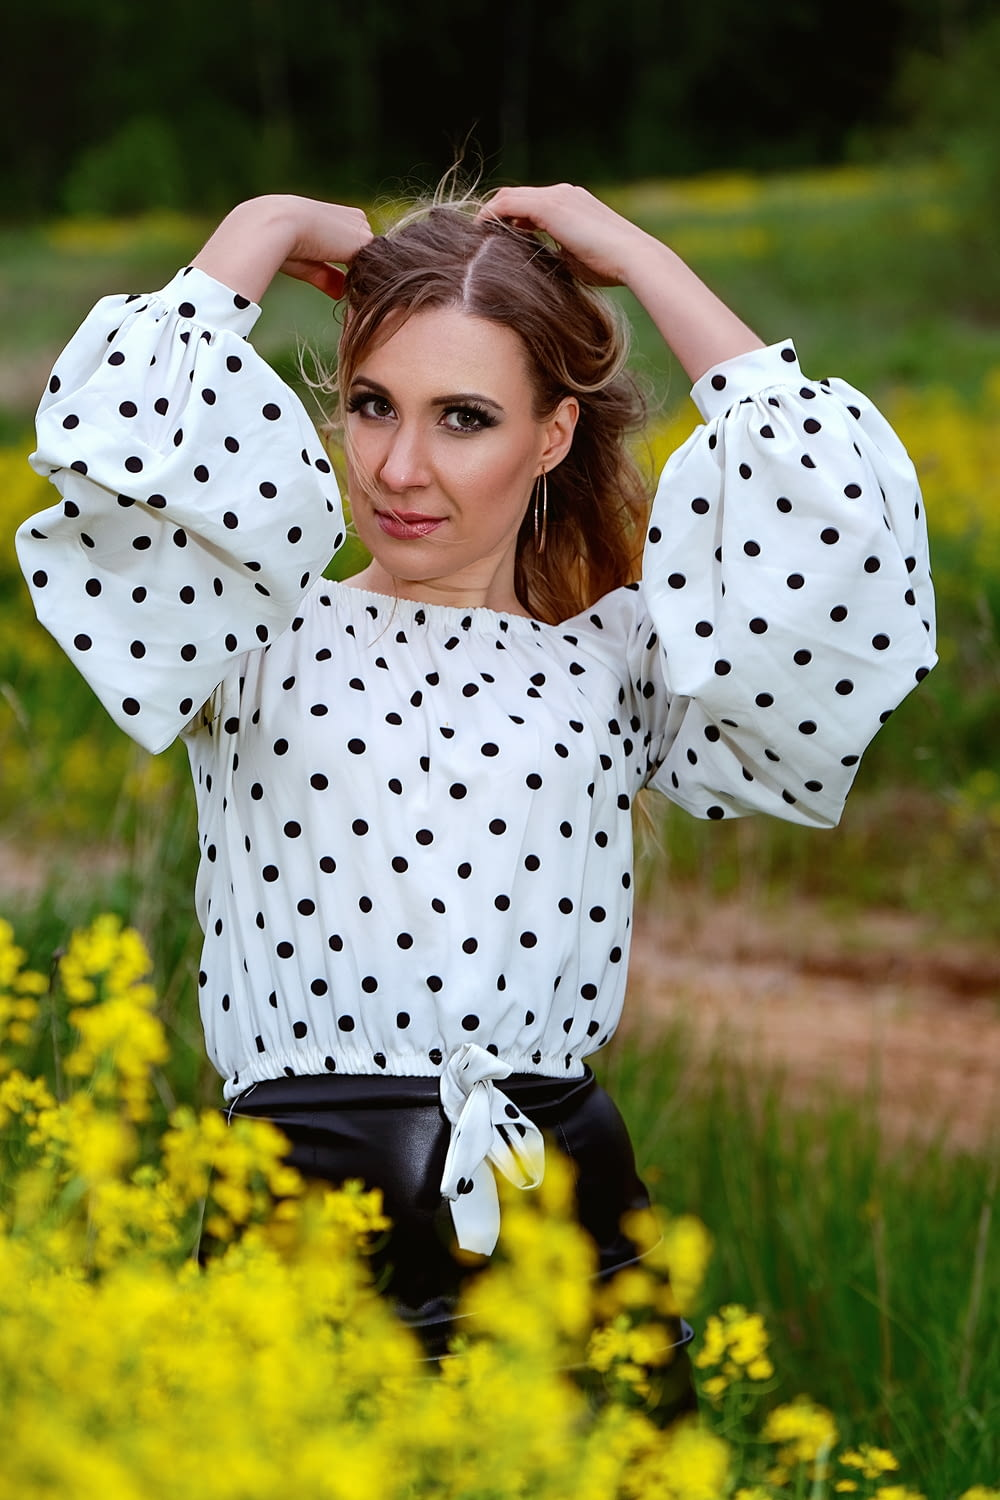 woman in white and black polka dot shirt lying on green grass field during daytime